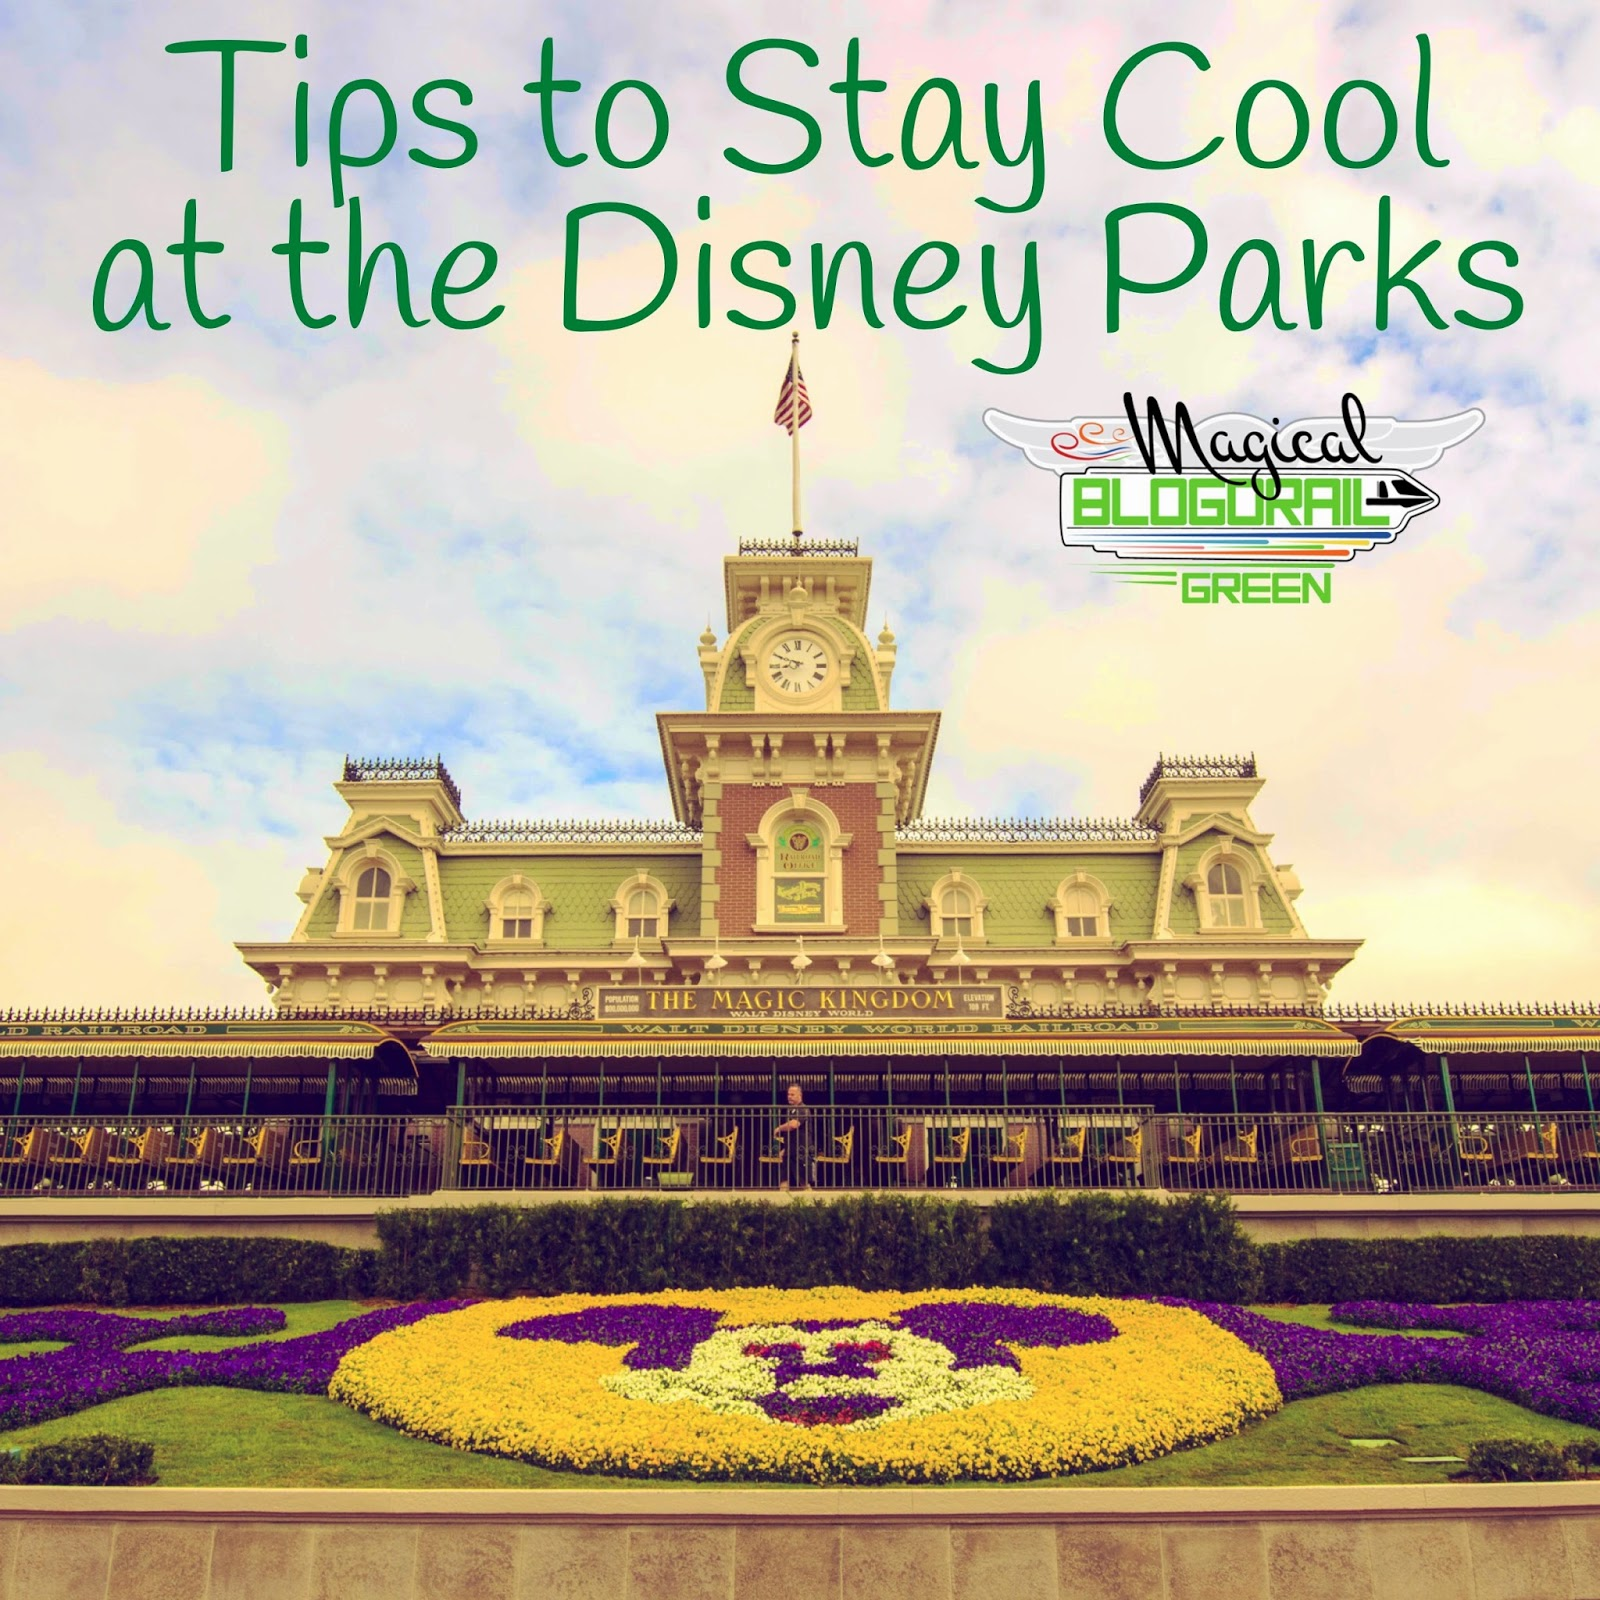 sharing ways to stay cool when you are visiting Disney this summer